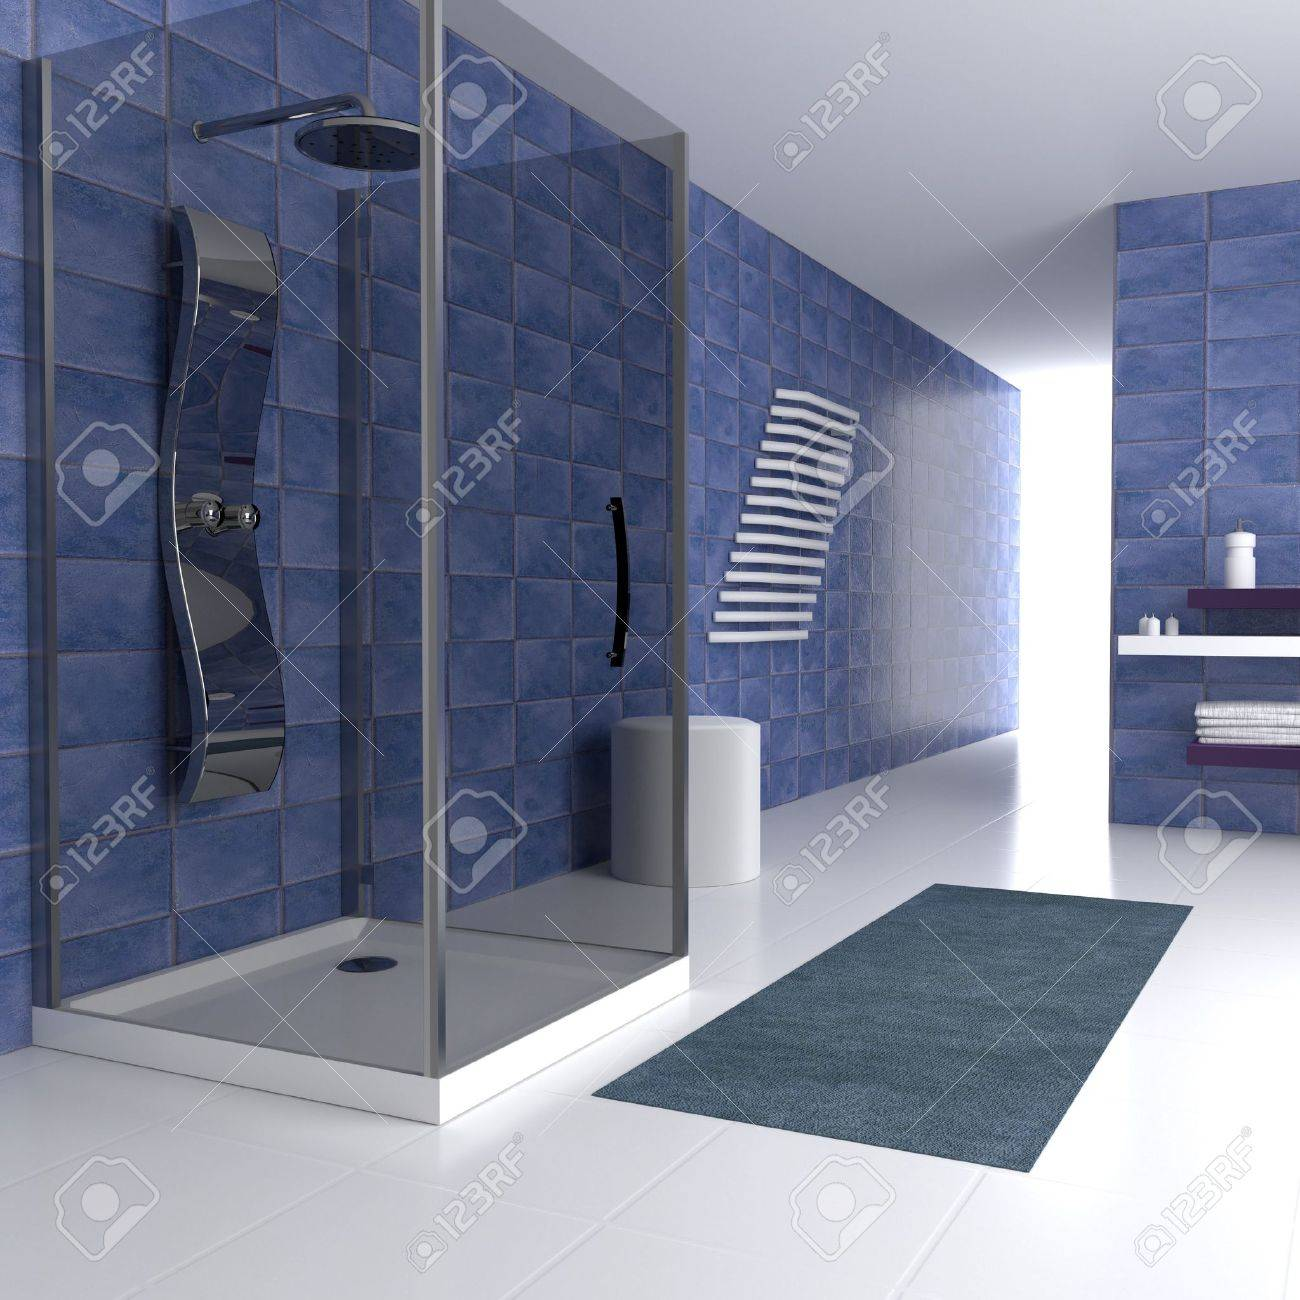 Simple Bathrooms With Shower bathroom equipment images & stock pictures. royalty free bathroom